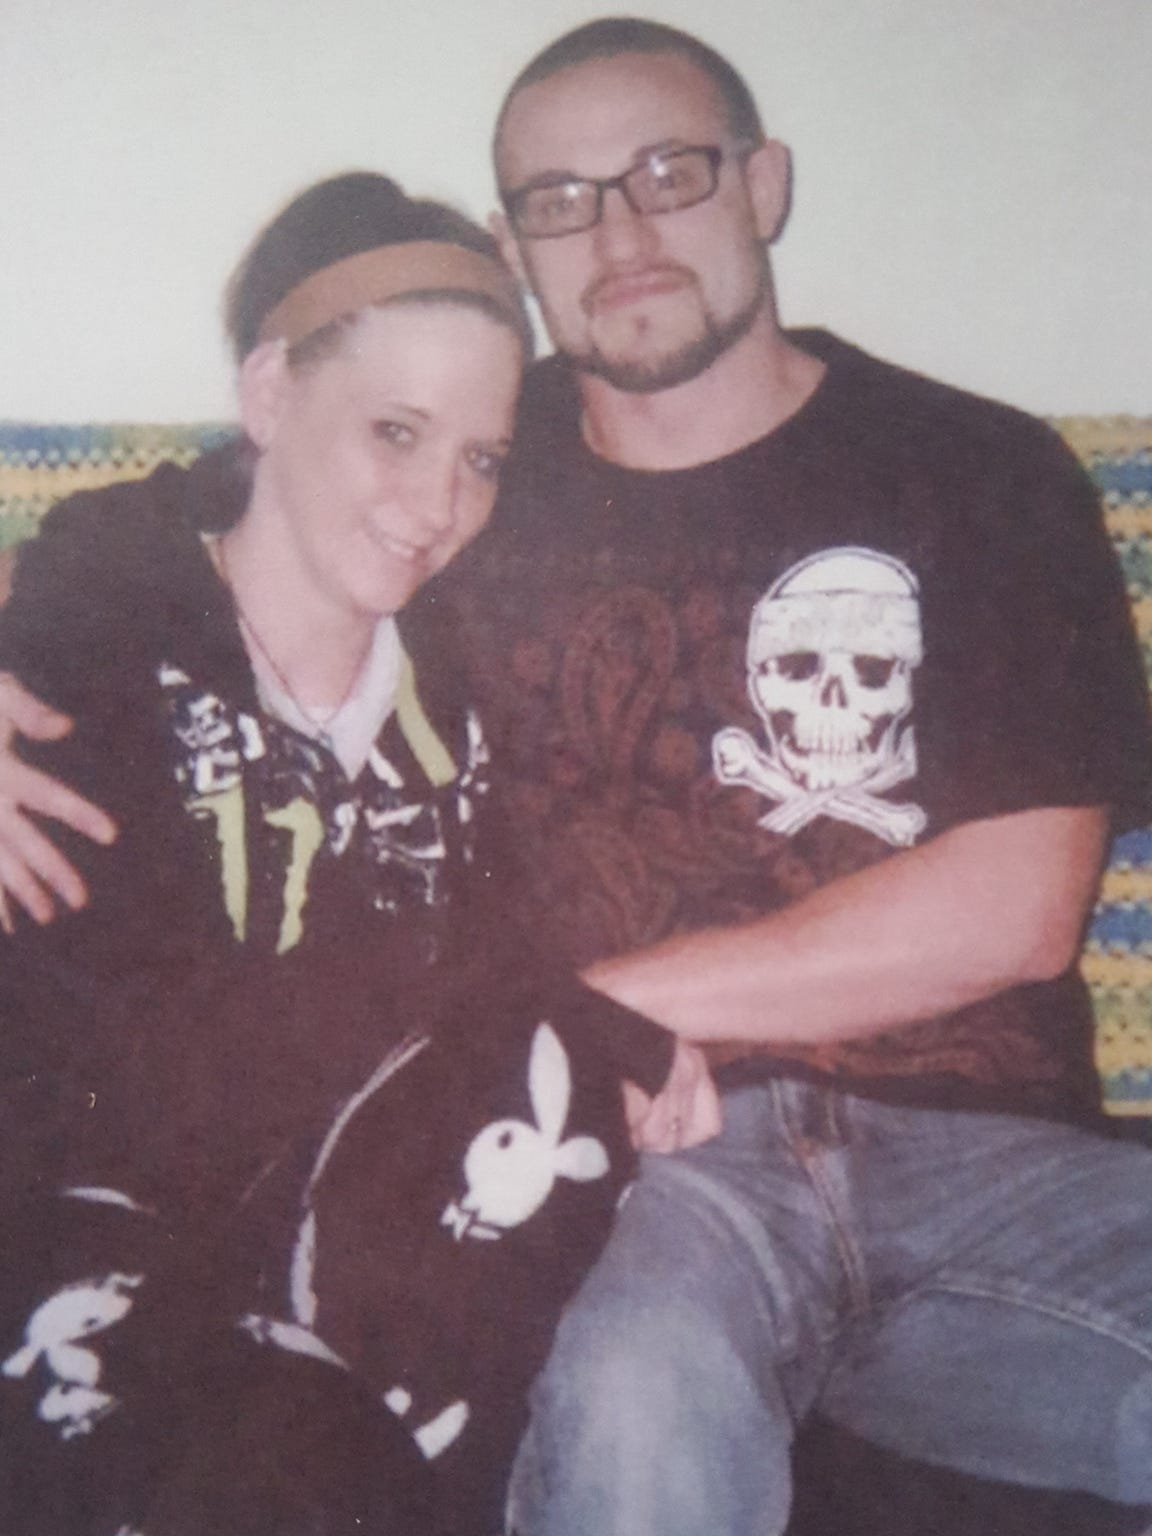 Kaytlin King (left) and Michael Speirs on Mother's Day in 2013. They had recently gotten back together, and Kaytlin was pregnant with their first child.